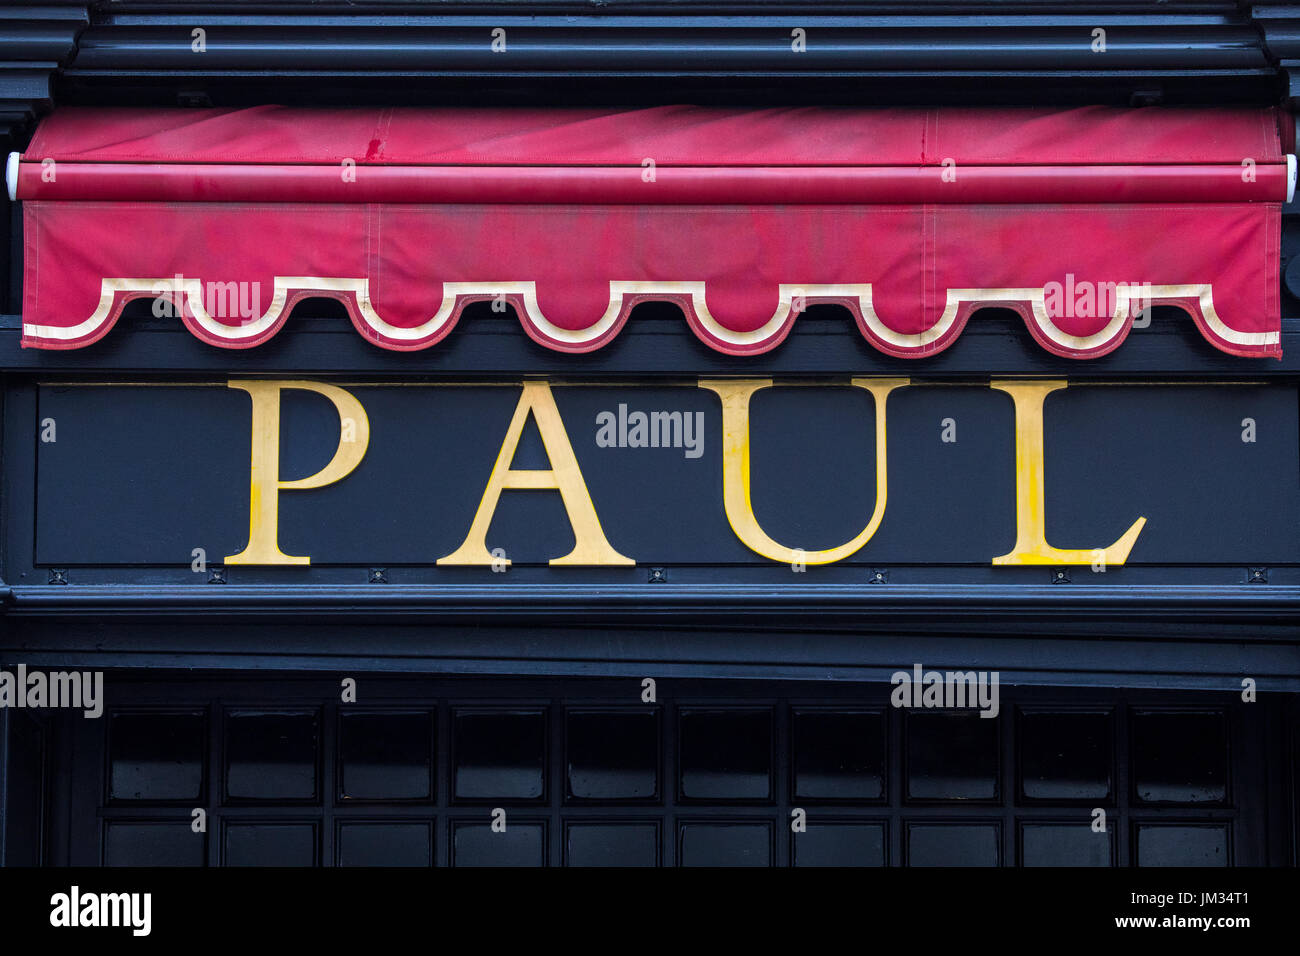 LILLE, FRANCE - JUNE 25TH 2017: The company logo above one of the Paul cafe restaurants in the city of Lille, France, on 25th June 2017. - Stock Image